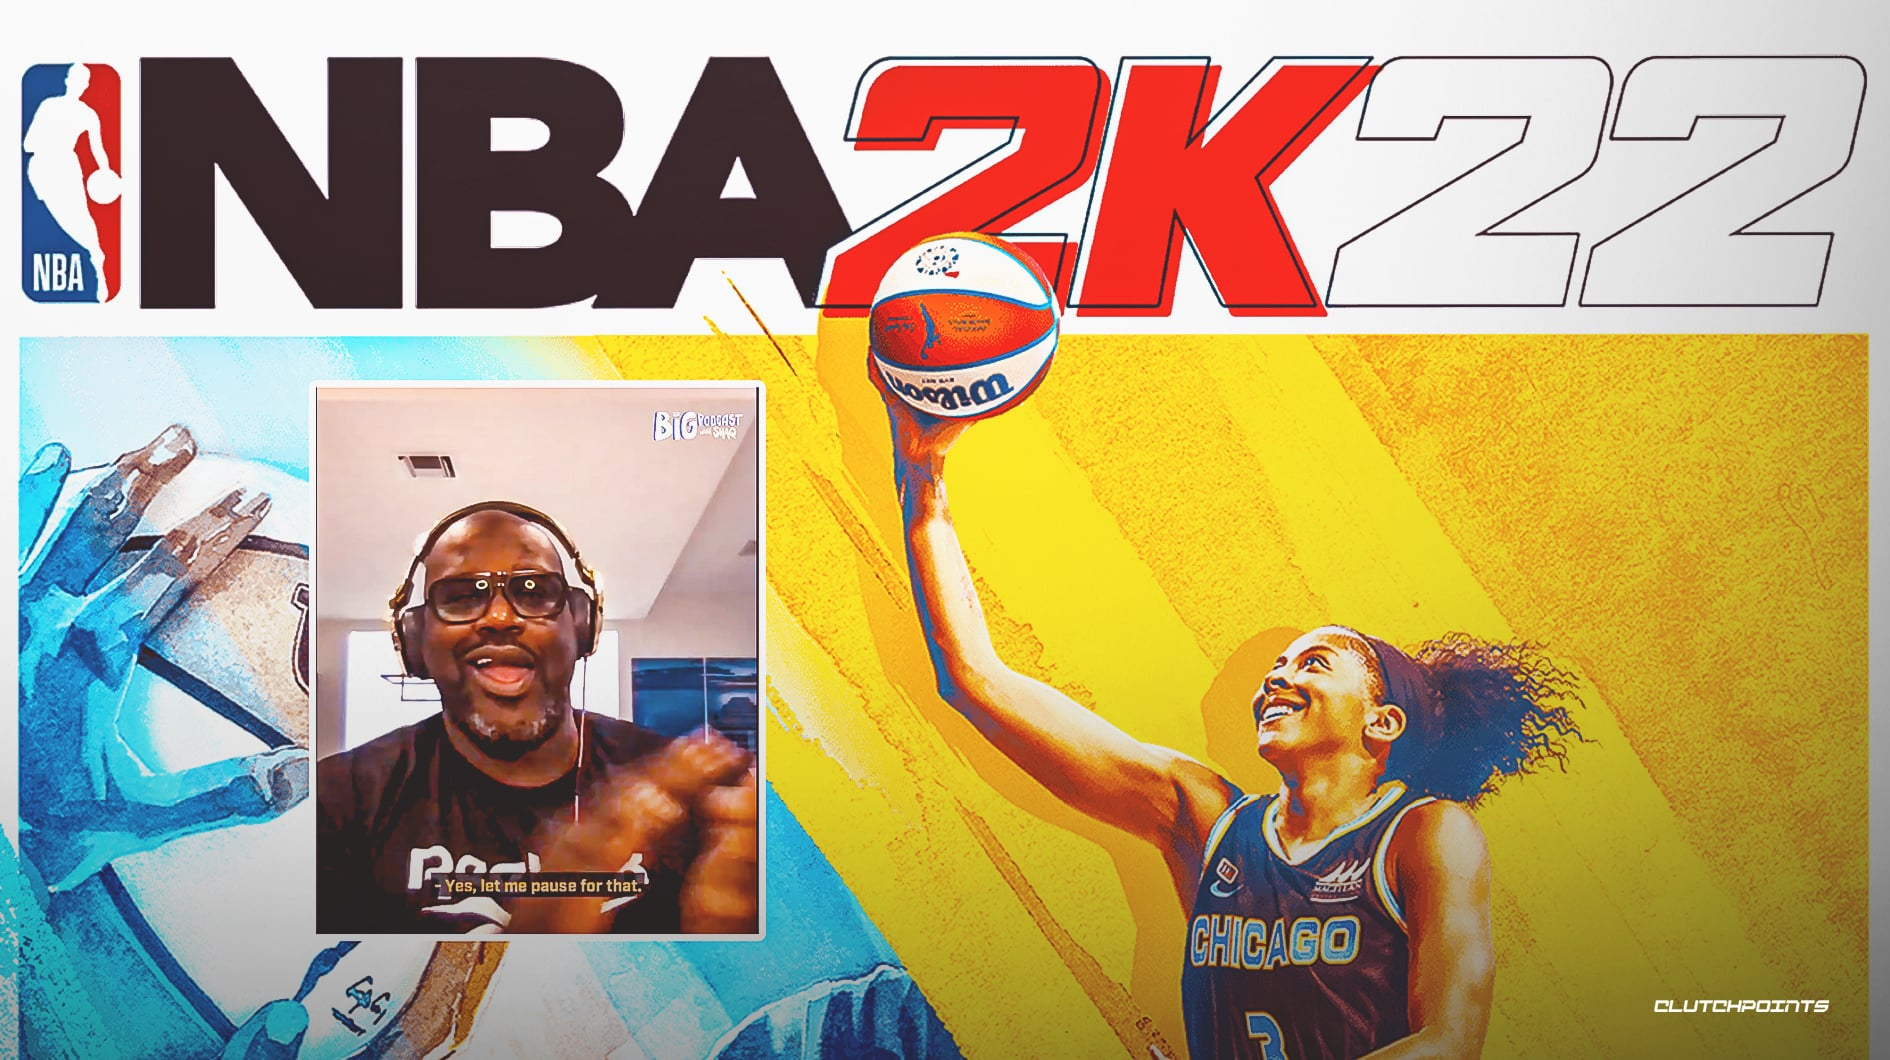 NBA 2K22, Shaquille O'Neal, Candace Parker